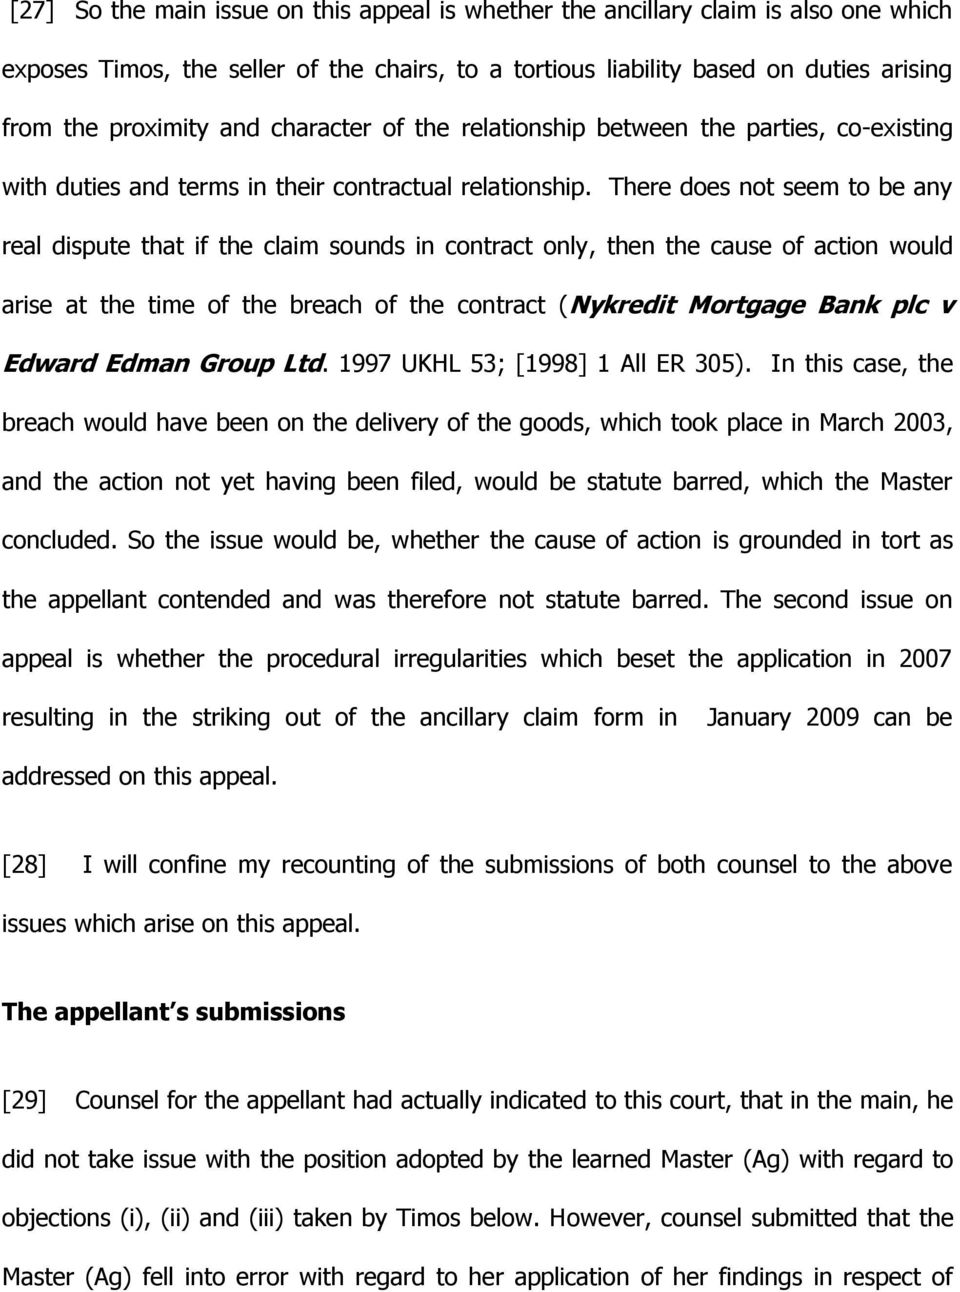 There does not seem to be any real dispute that if the claim sounds in contract only, then the cause of action would arise at the time of the breach of the contract (Nykredit Mortgage Bank plc v